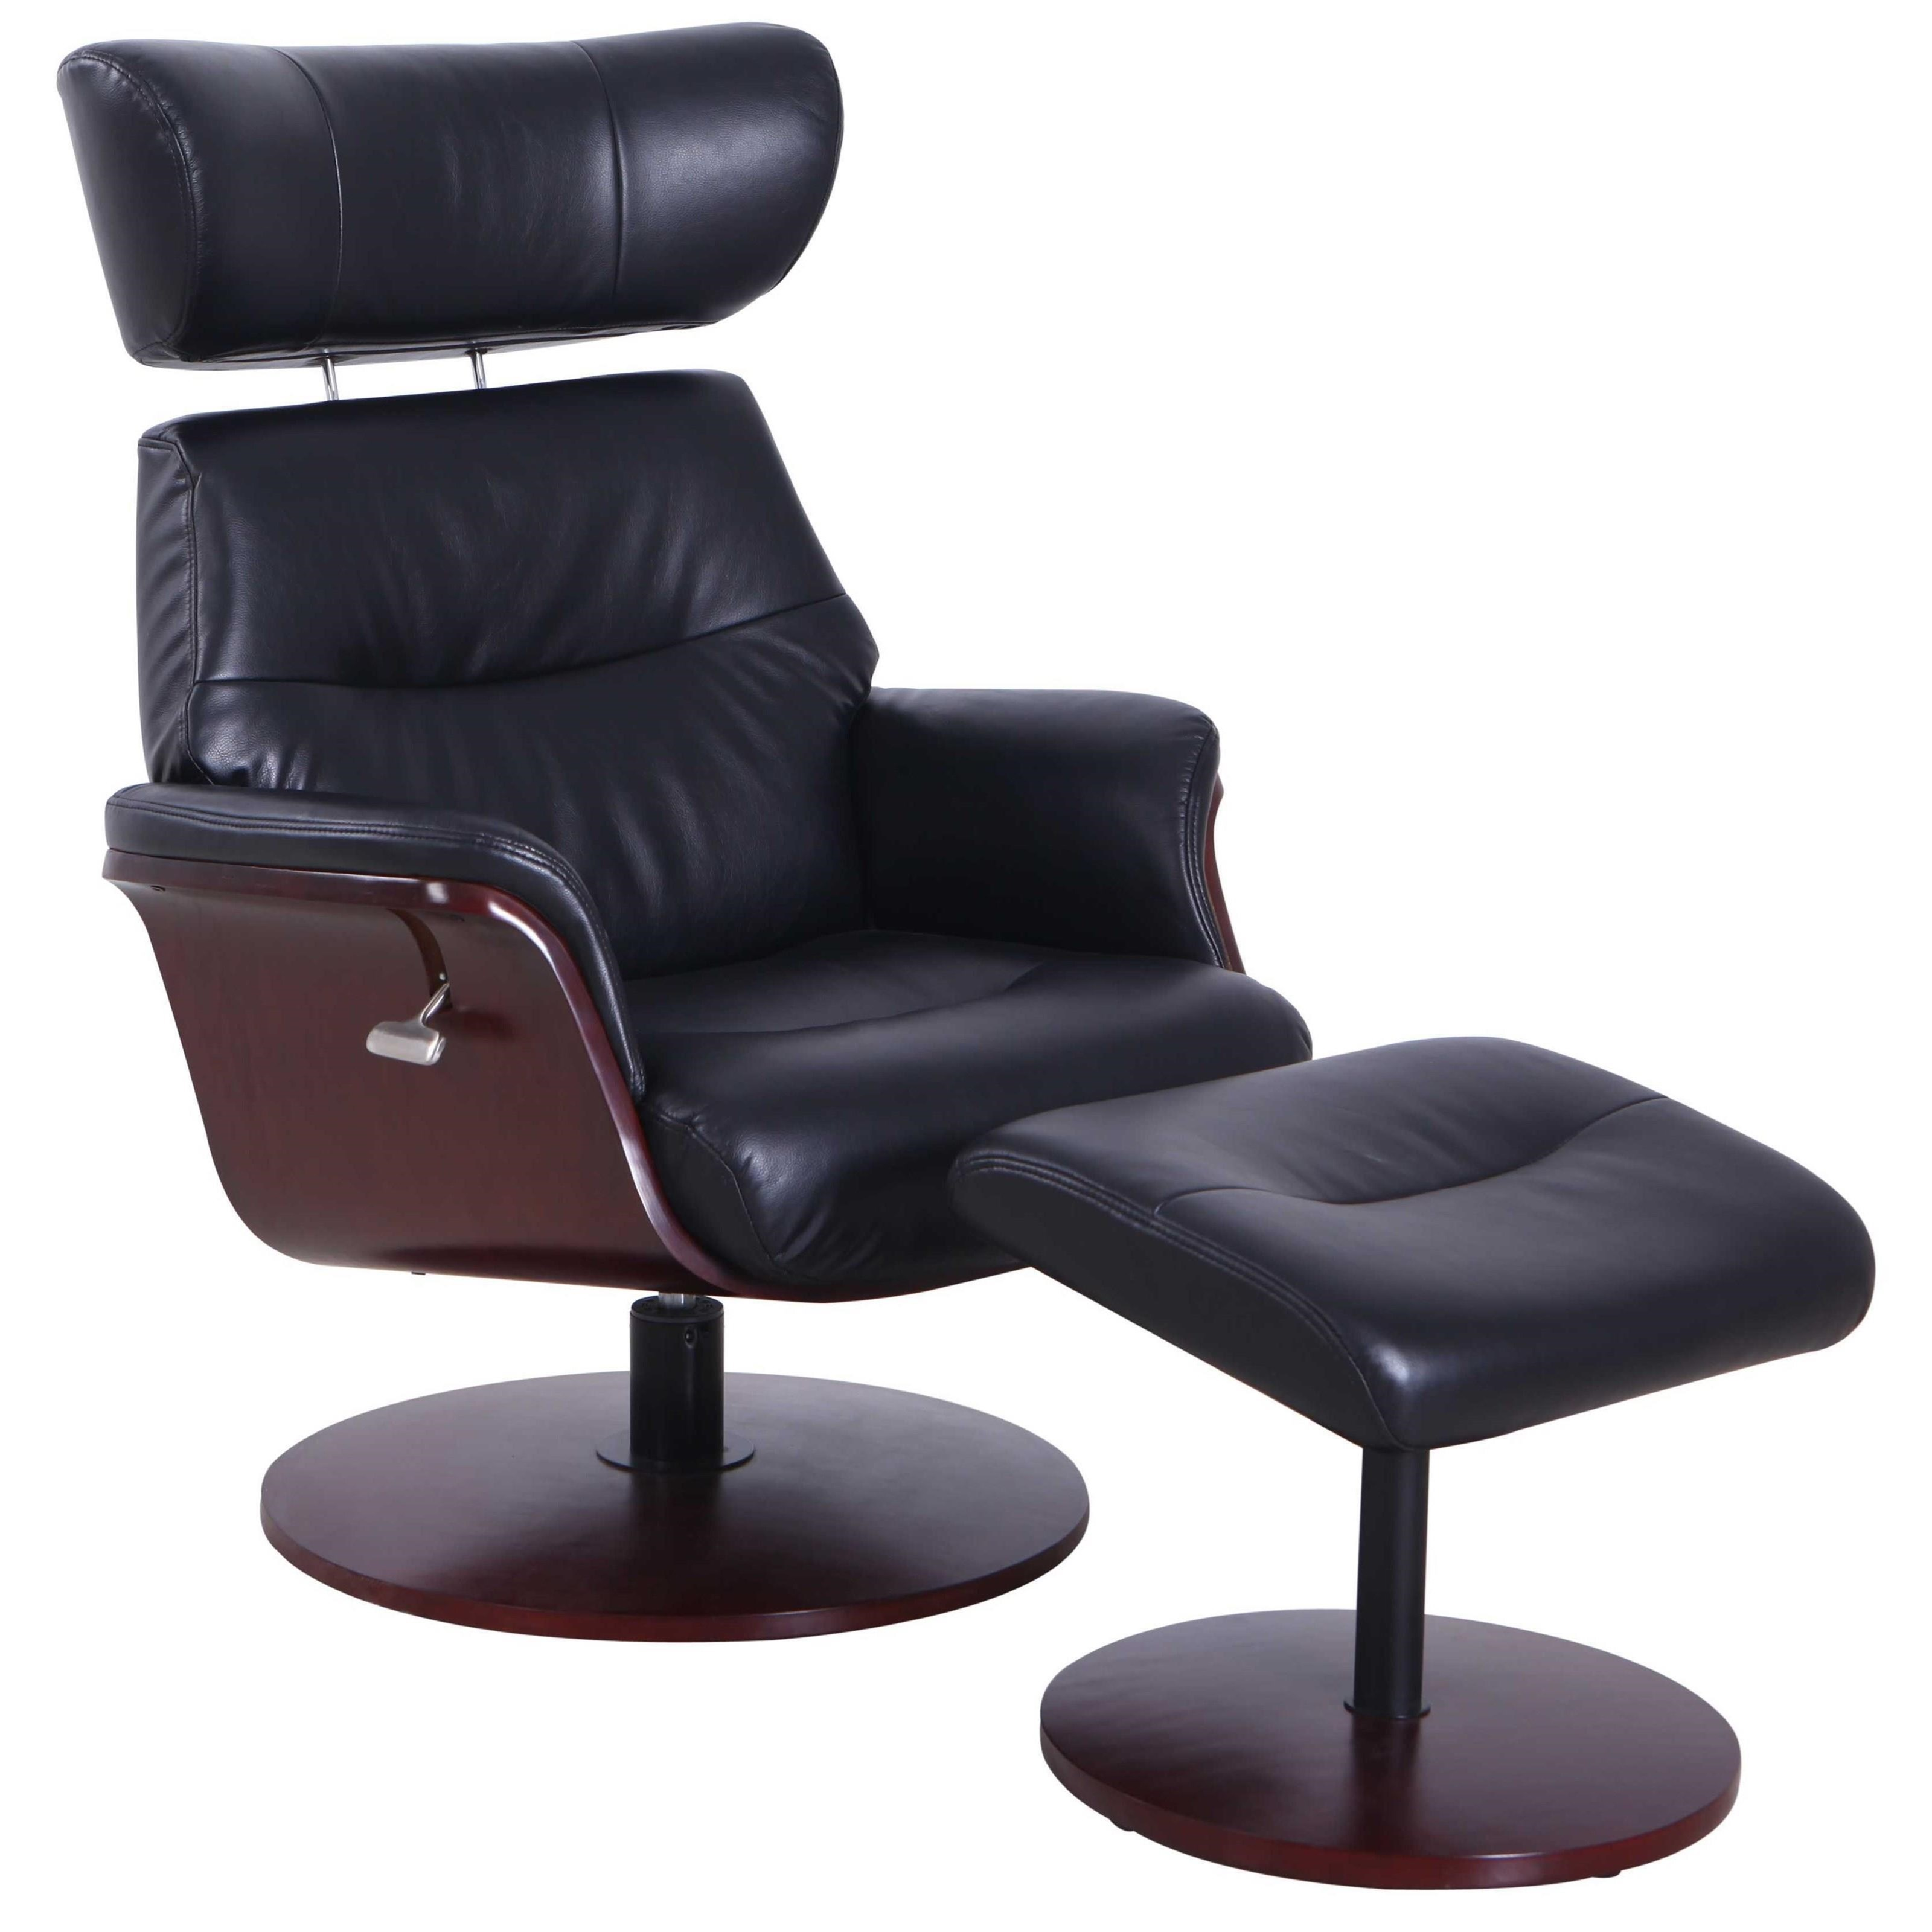 Sennet Reclining Swivel Chair and Ottoman at Sadler's Home Furnishings